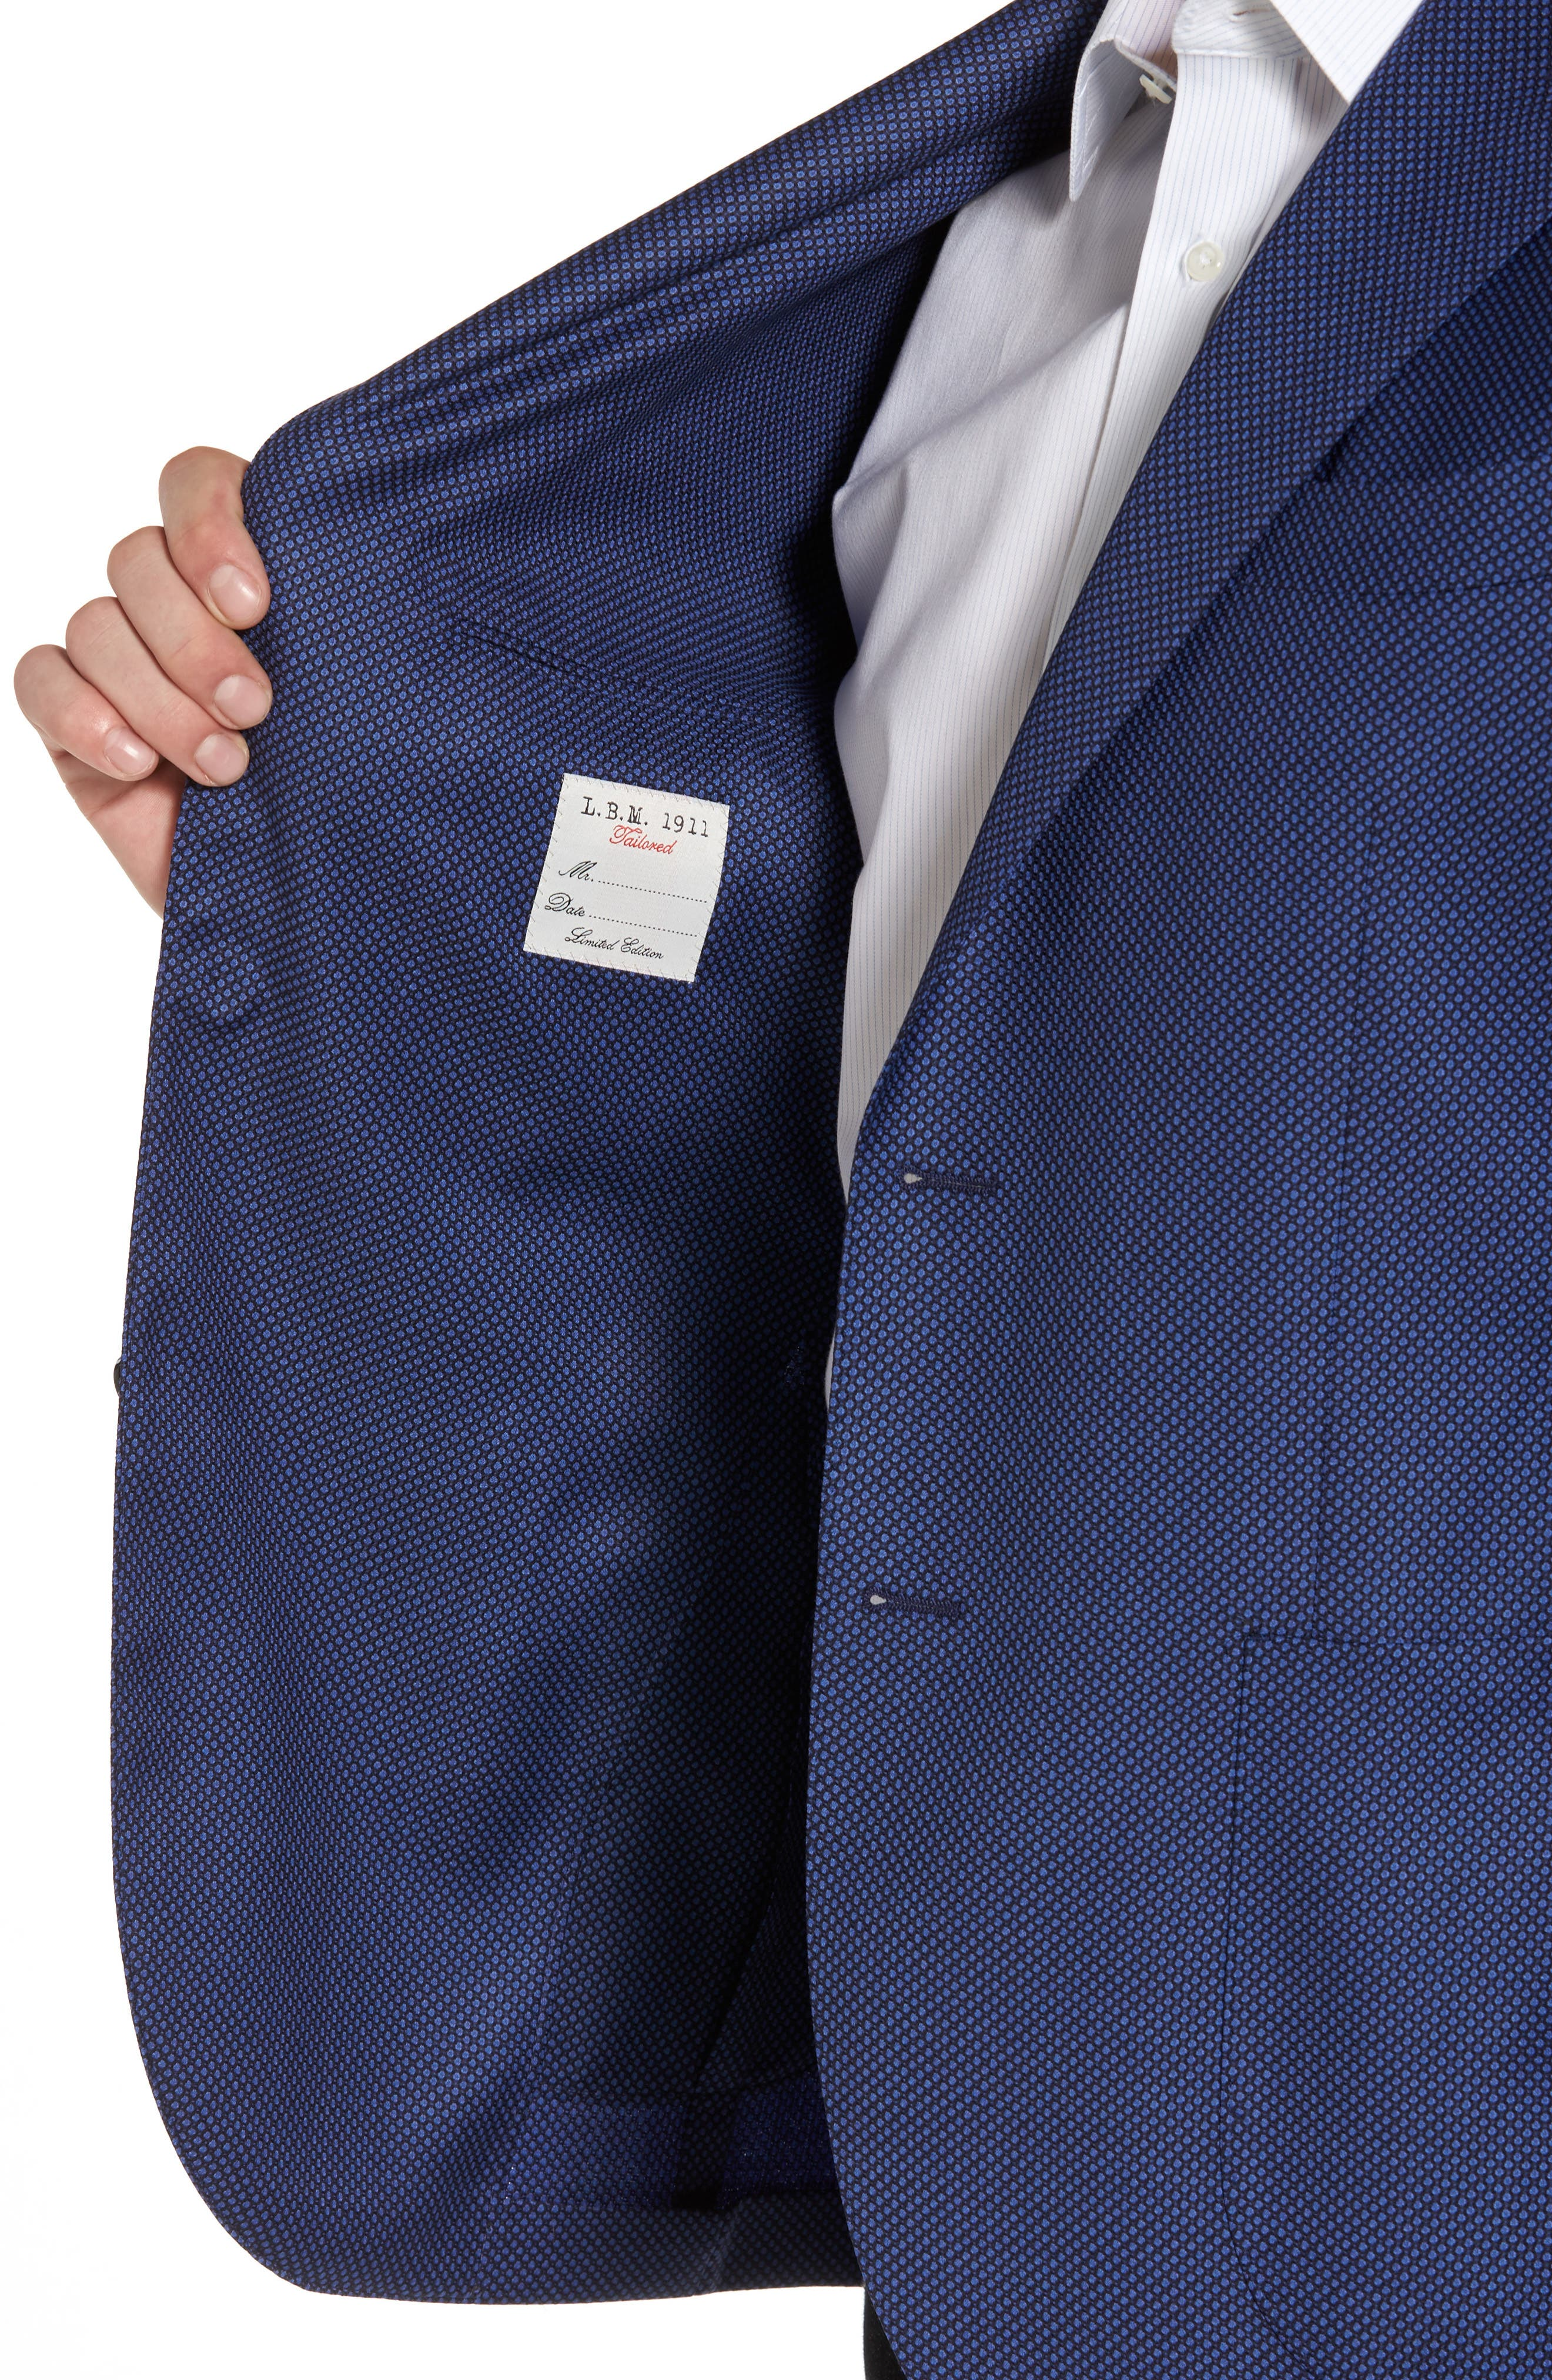 Classic Fit Wool Blazer,                             Alternate thumbnail 4, color,                             Navy